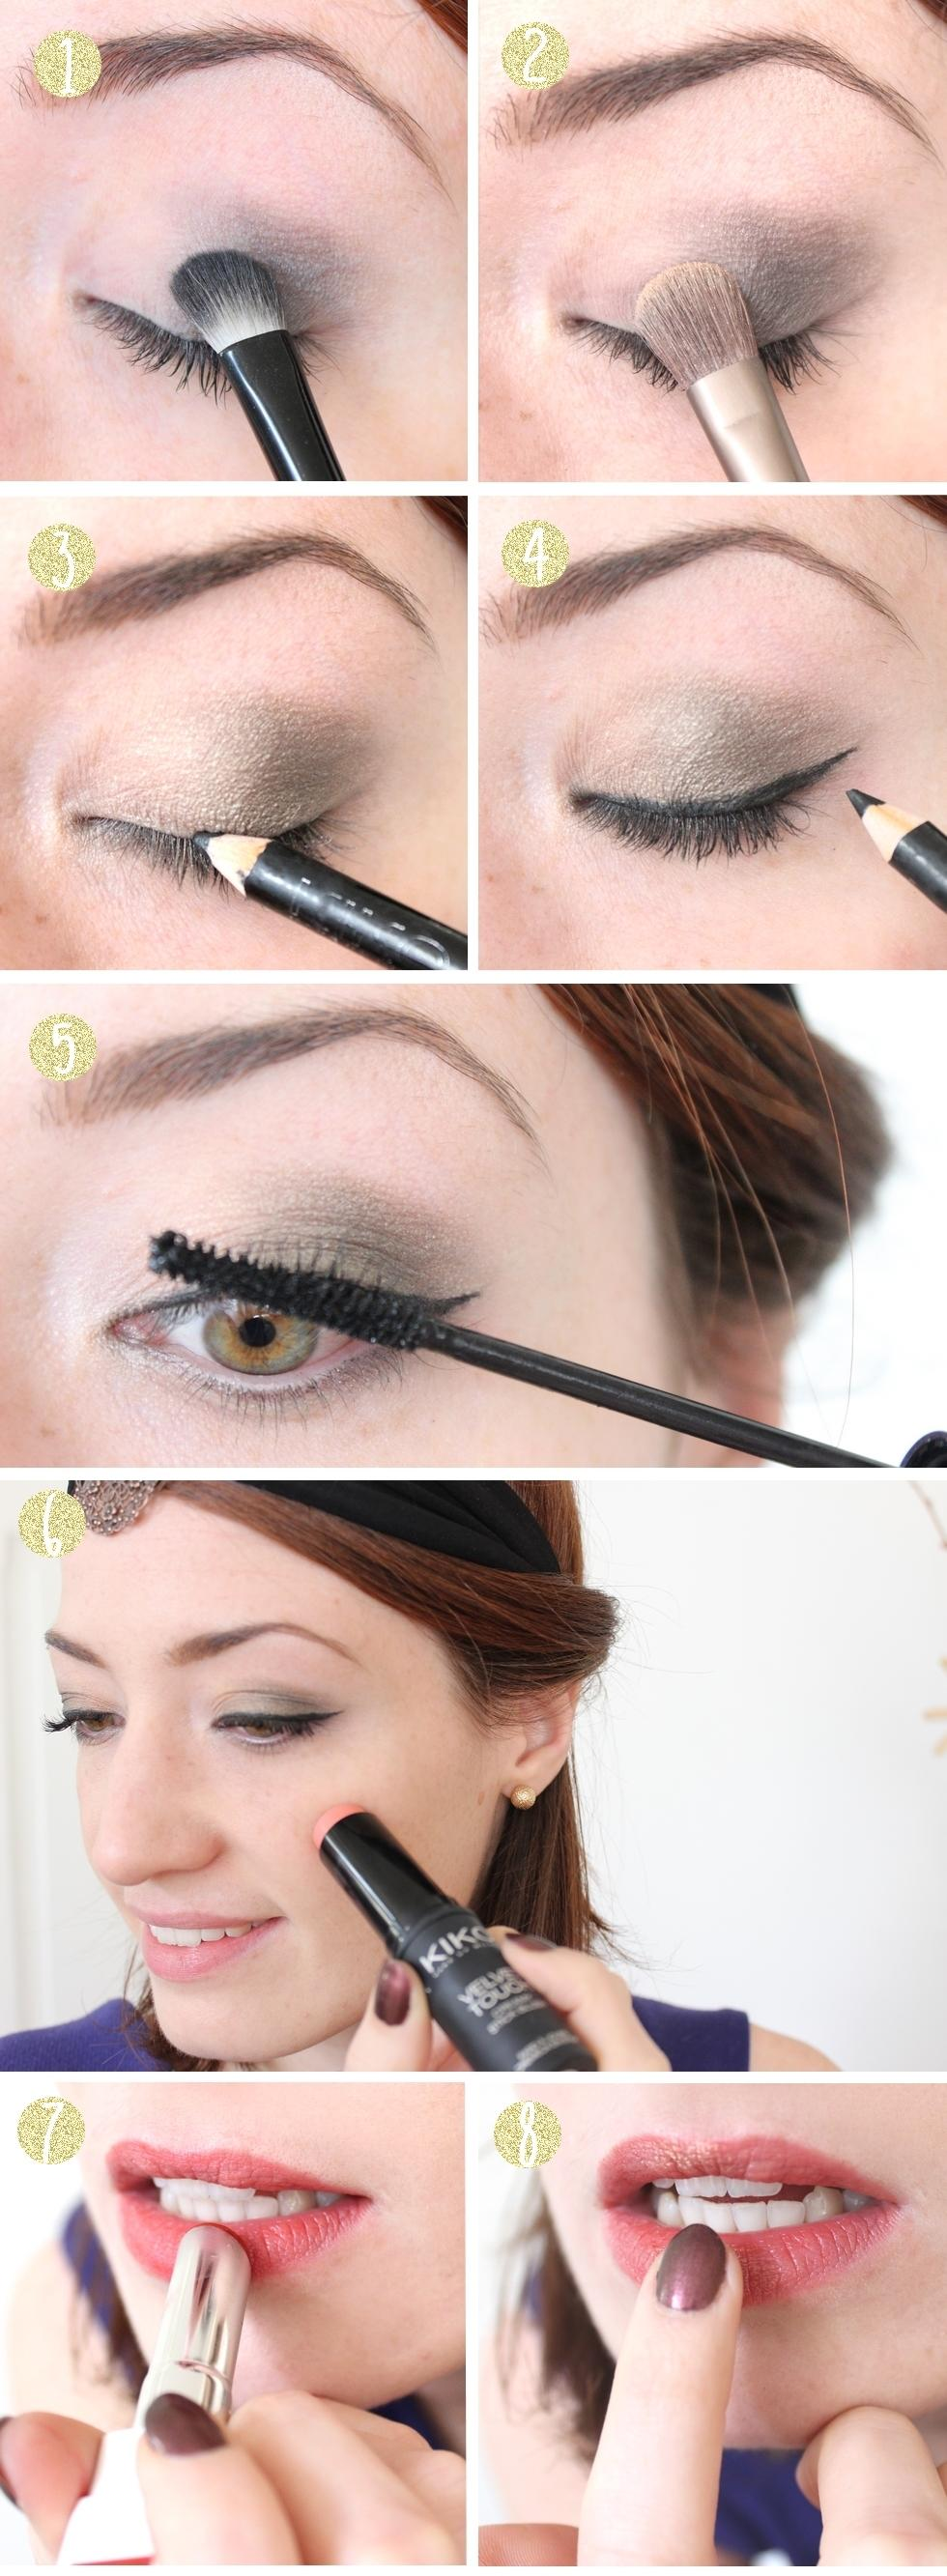 Tuto step by step : un make-up doré